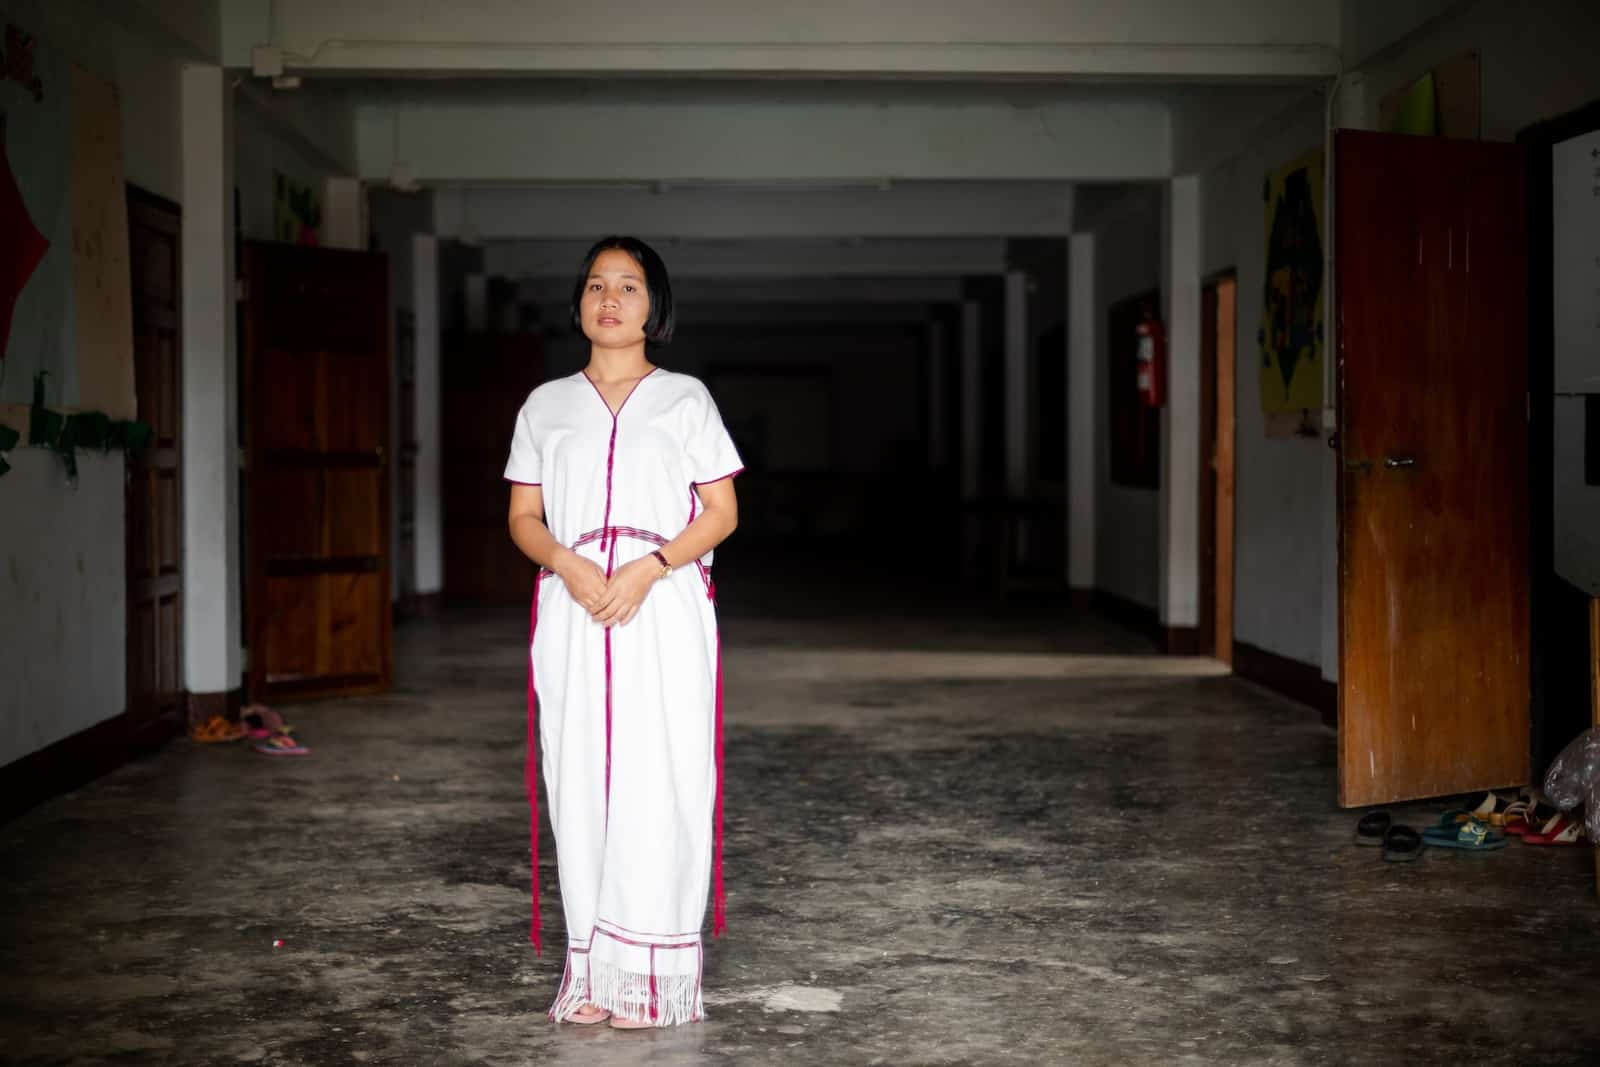 A girl in a long white dress stands in a long dark hallway.